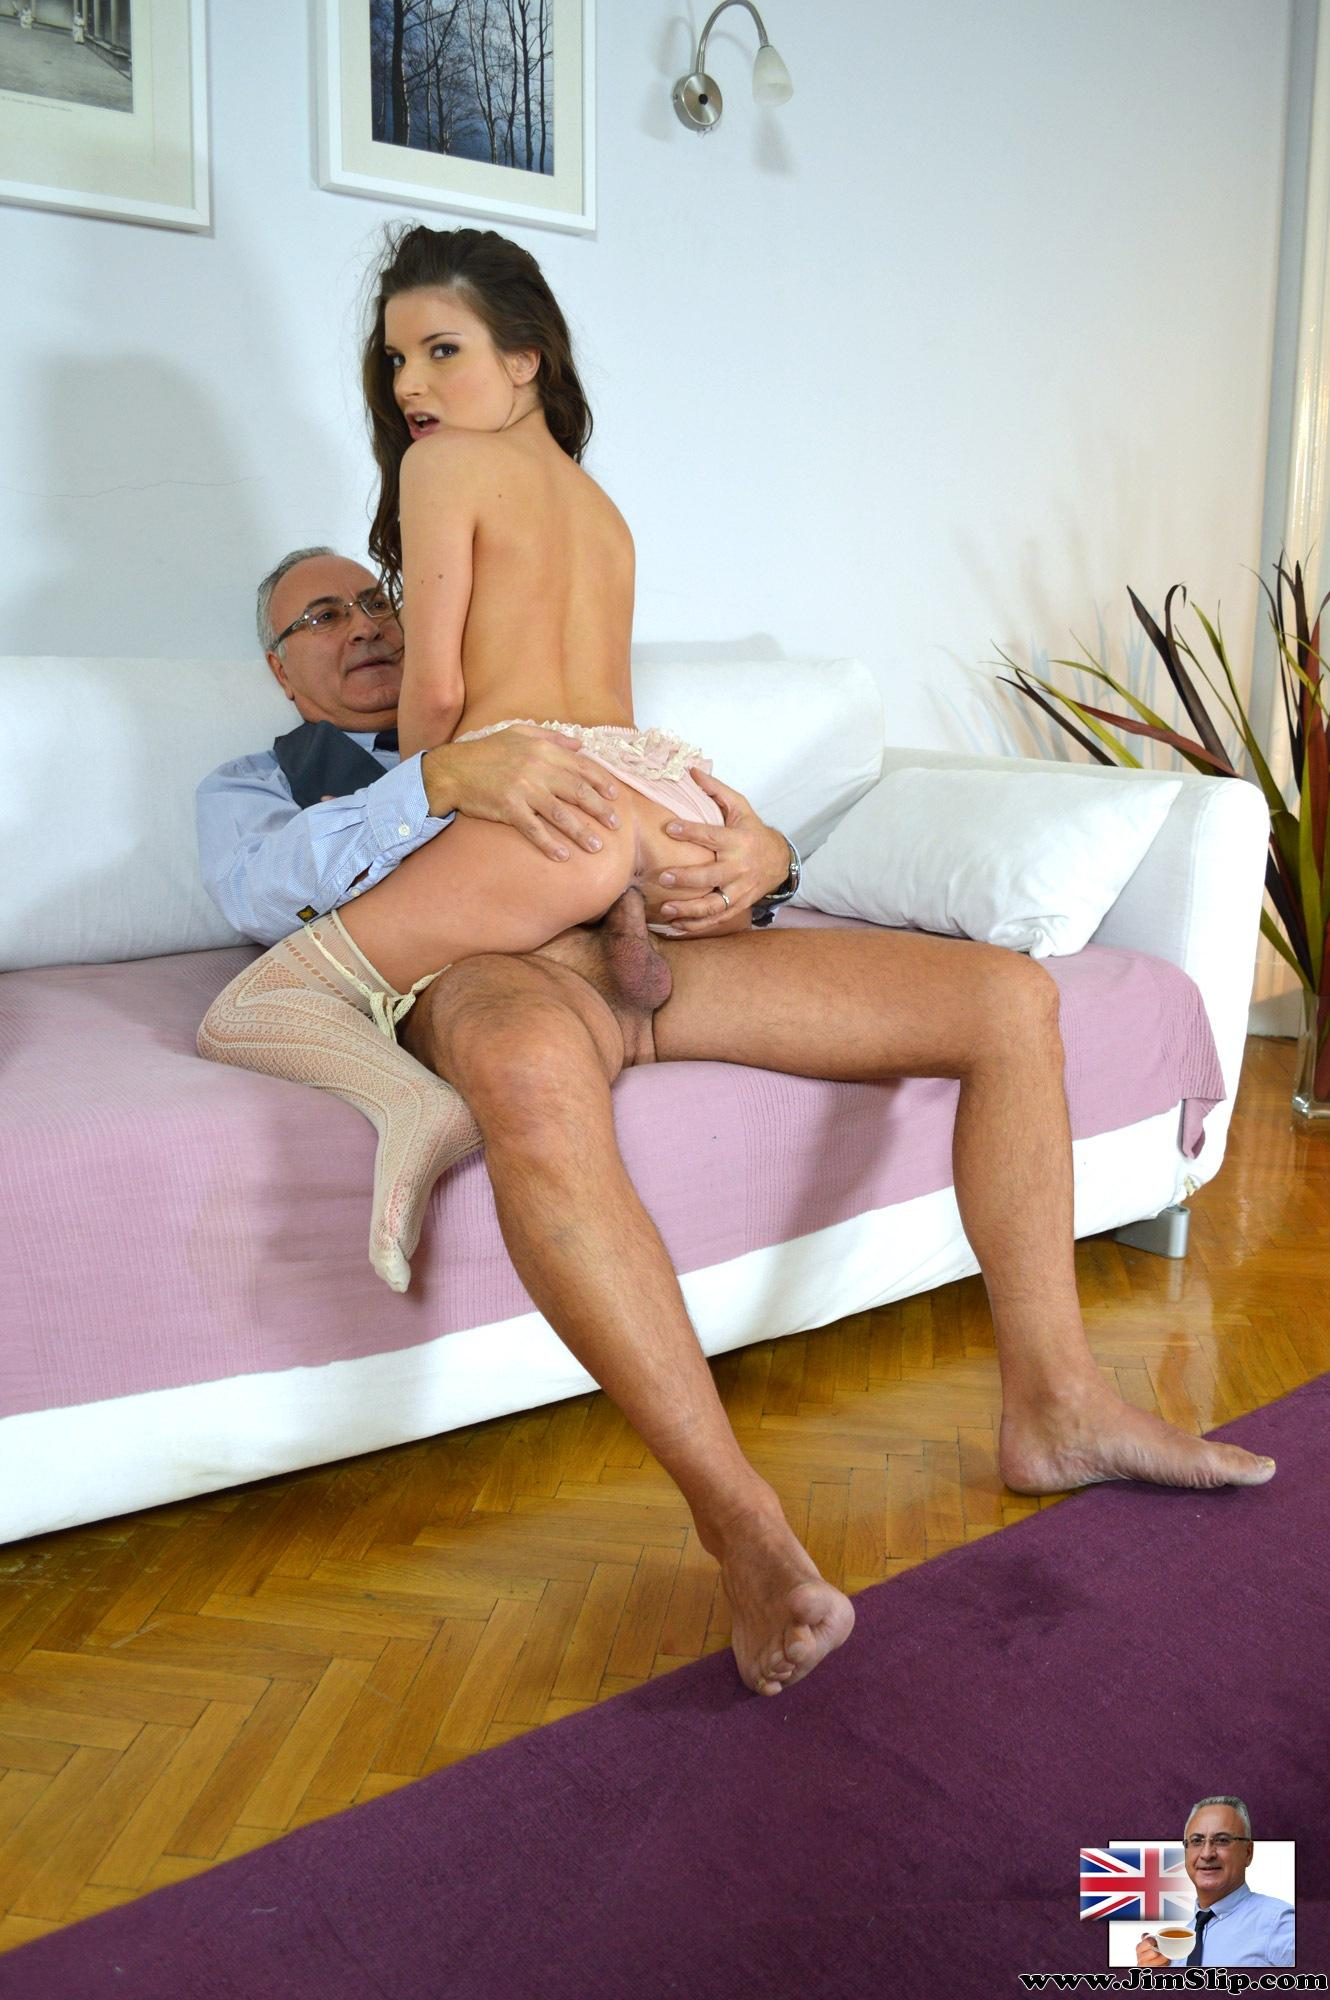 Young Anita pounding on old man Jims cock